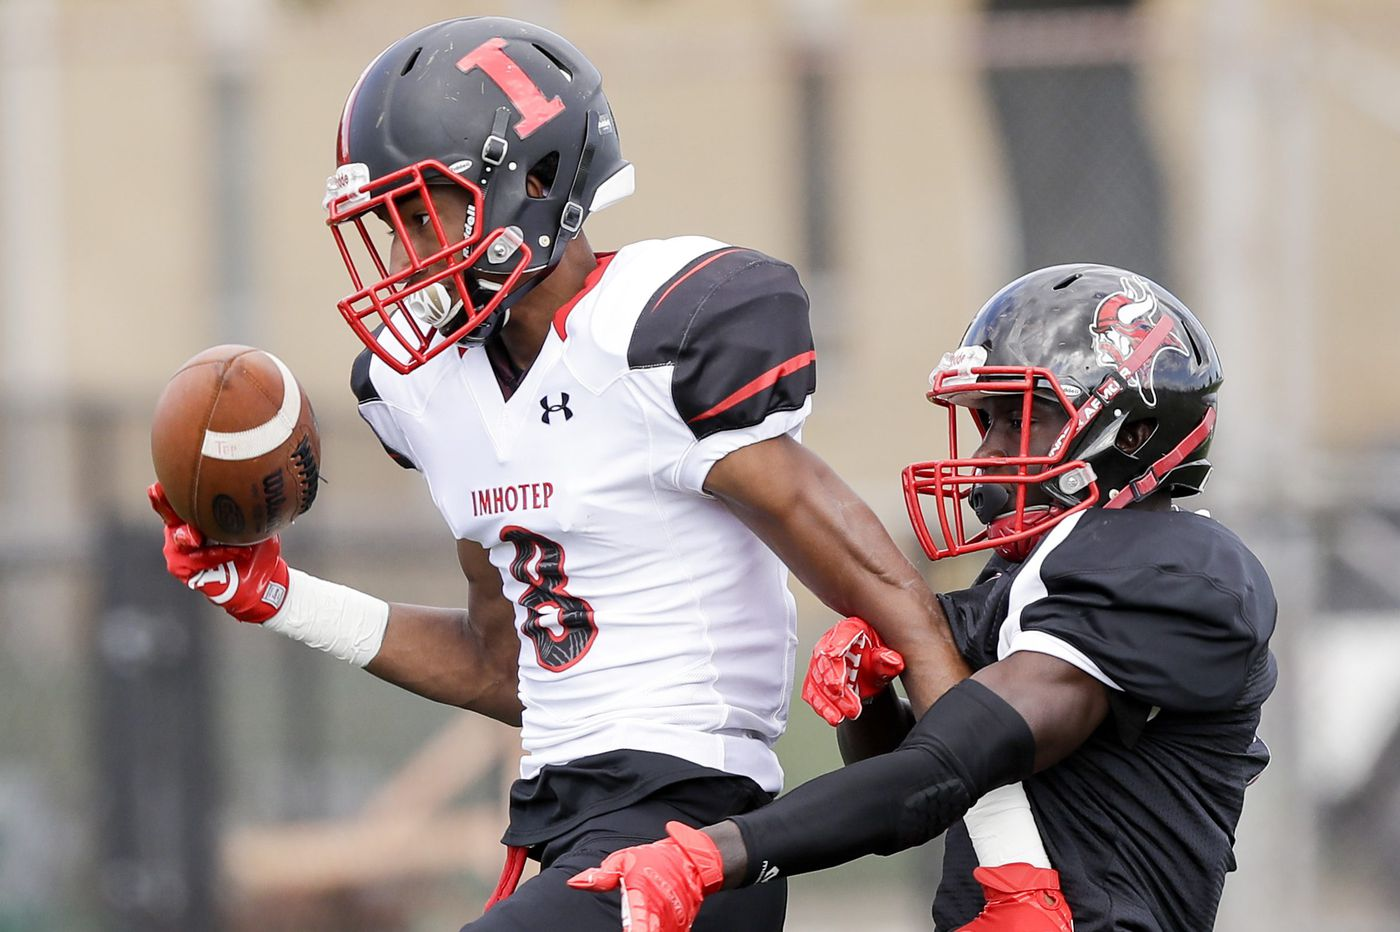 VIDEO: Yusuf Terry headlines Imhotep passing attack